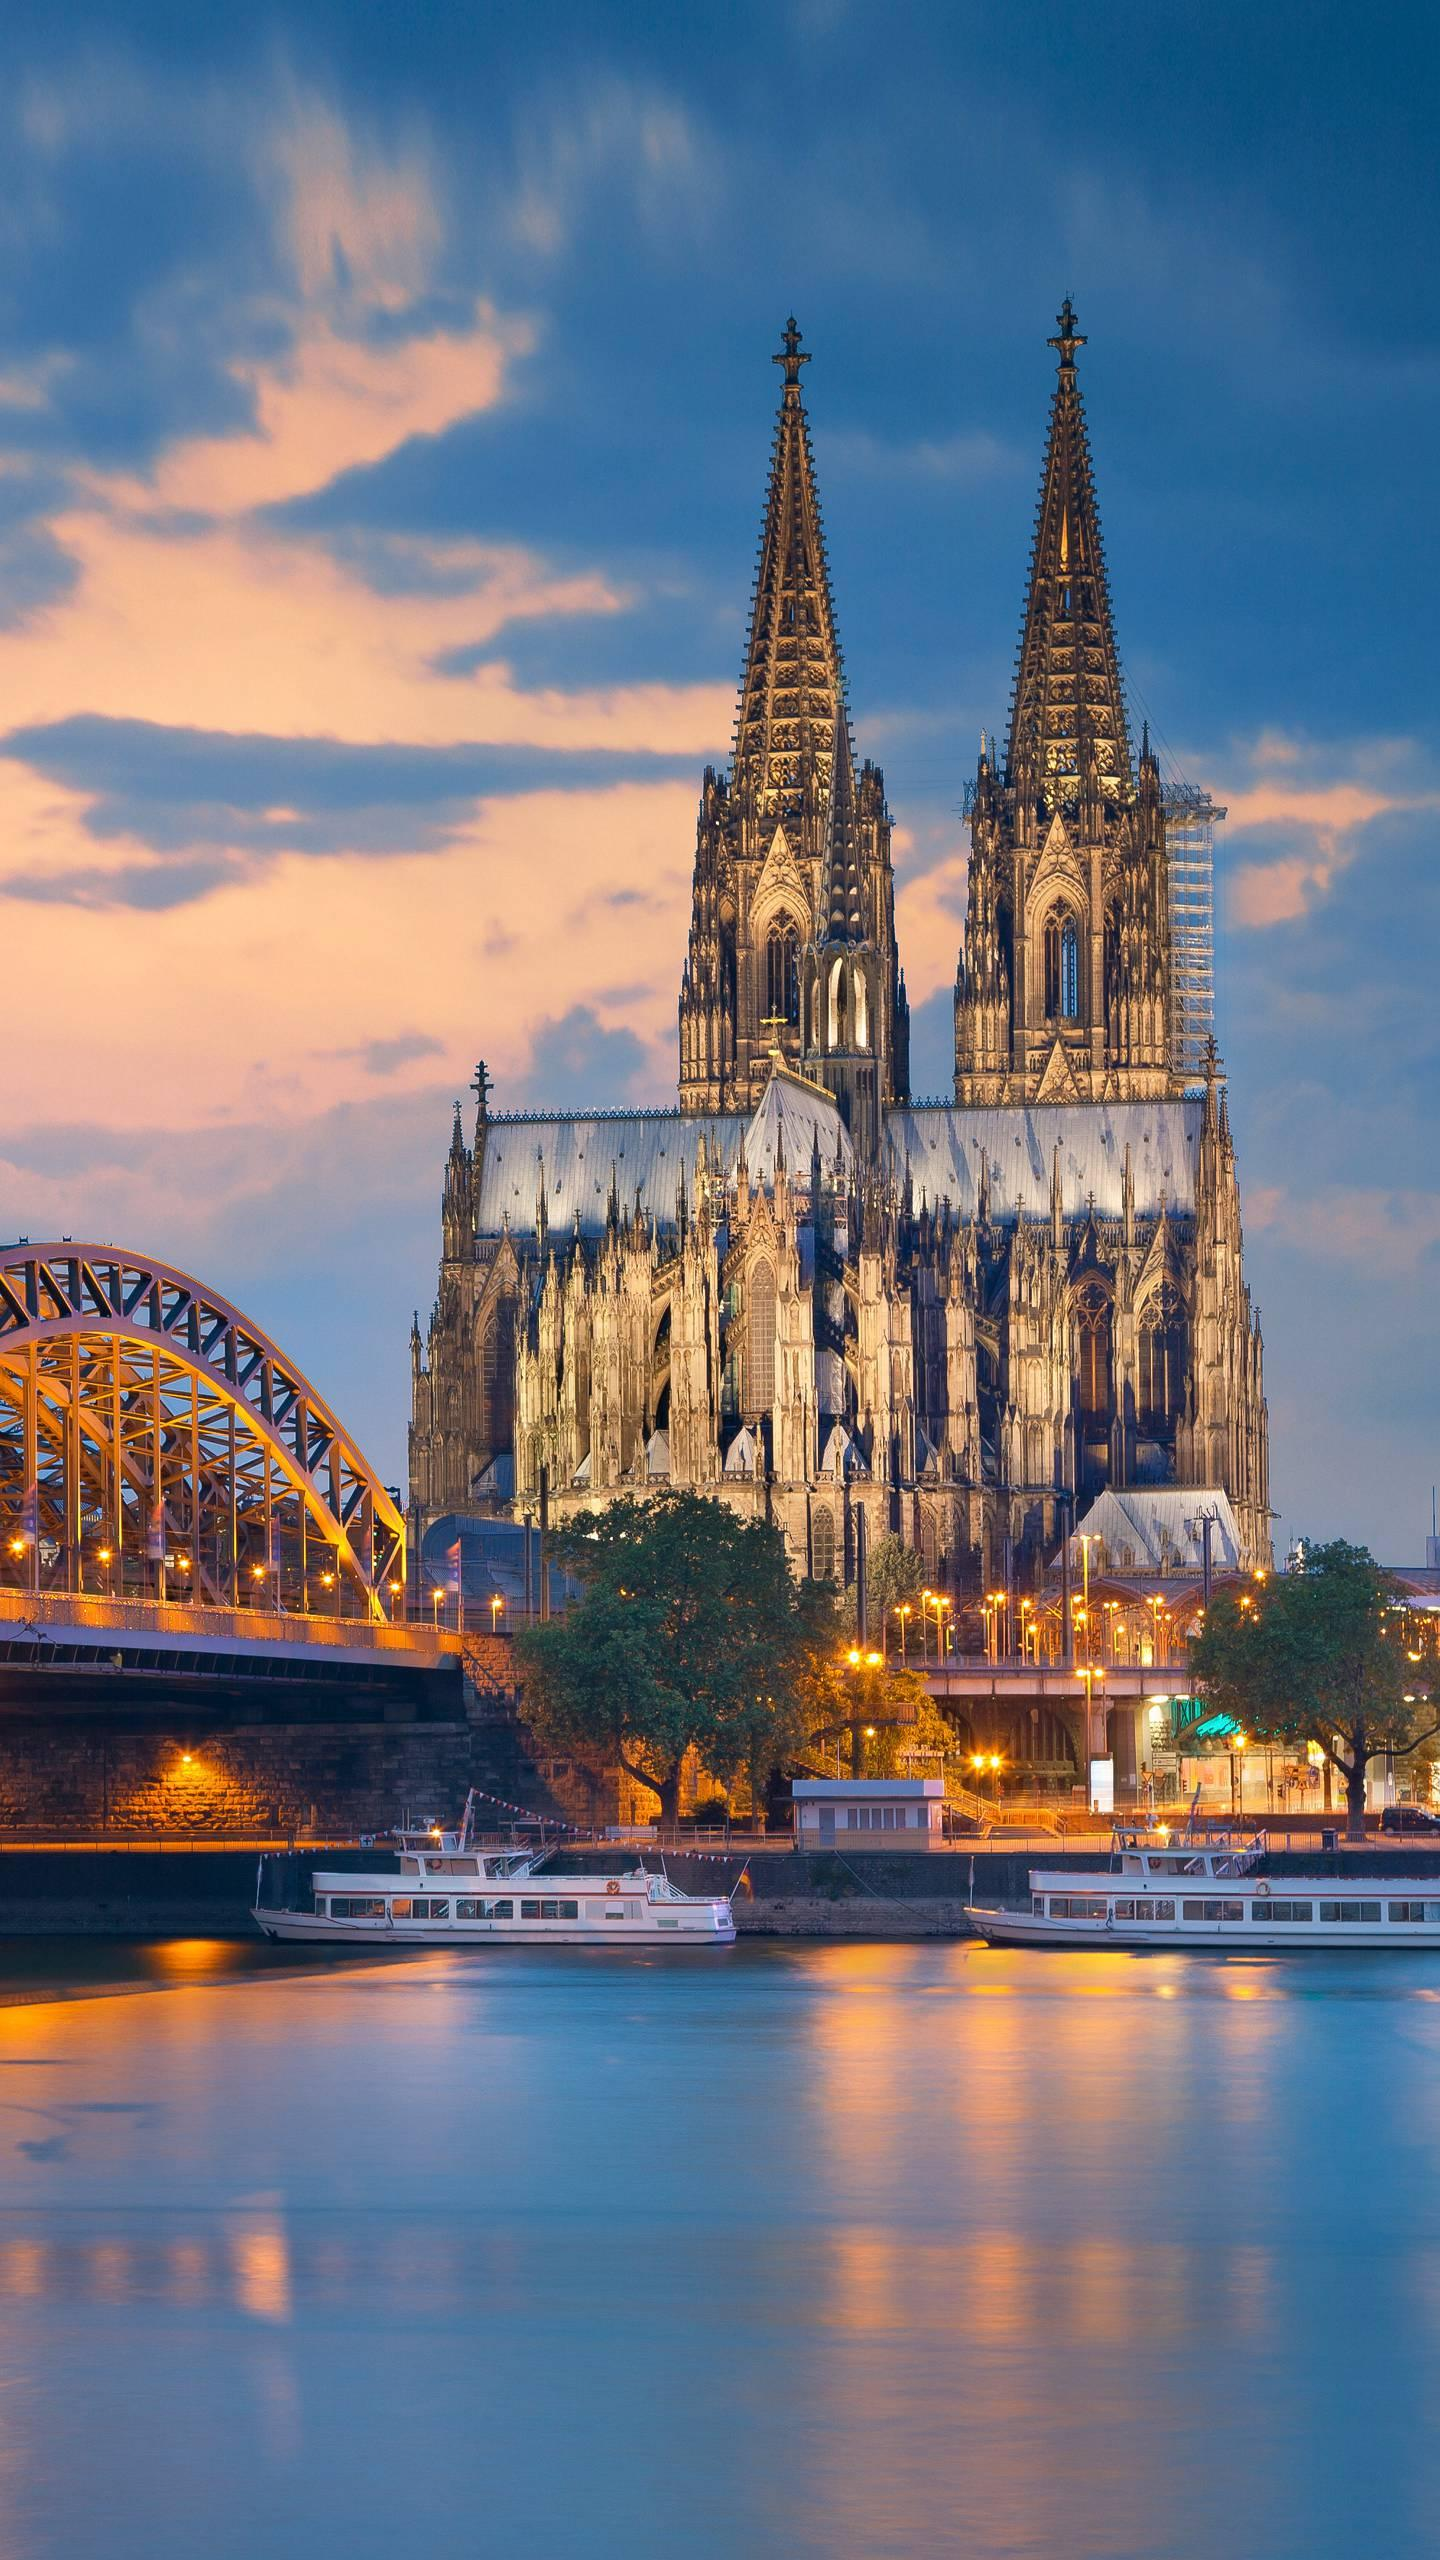 Germany - Cologne Cathedral. The combination of grandeur and exquisiteness is regarded as the perfect example of Gothic church architecture.